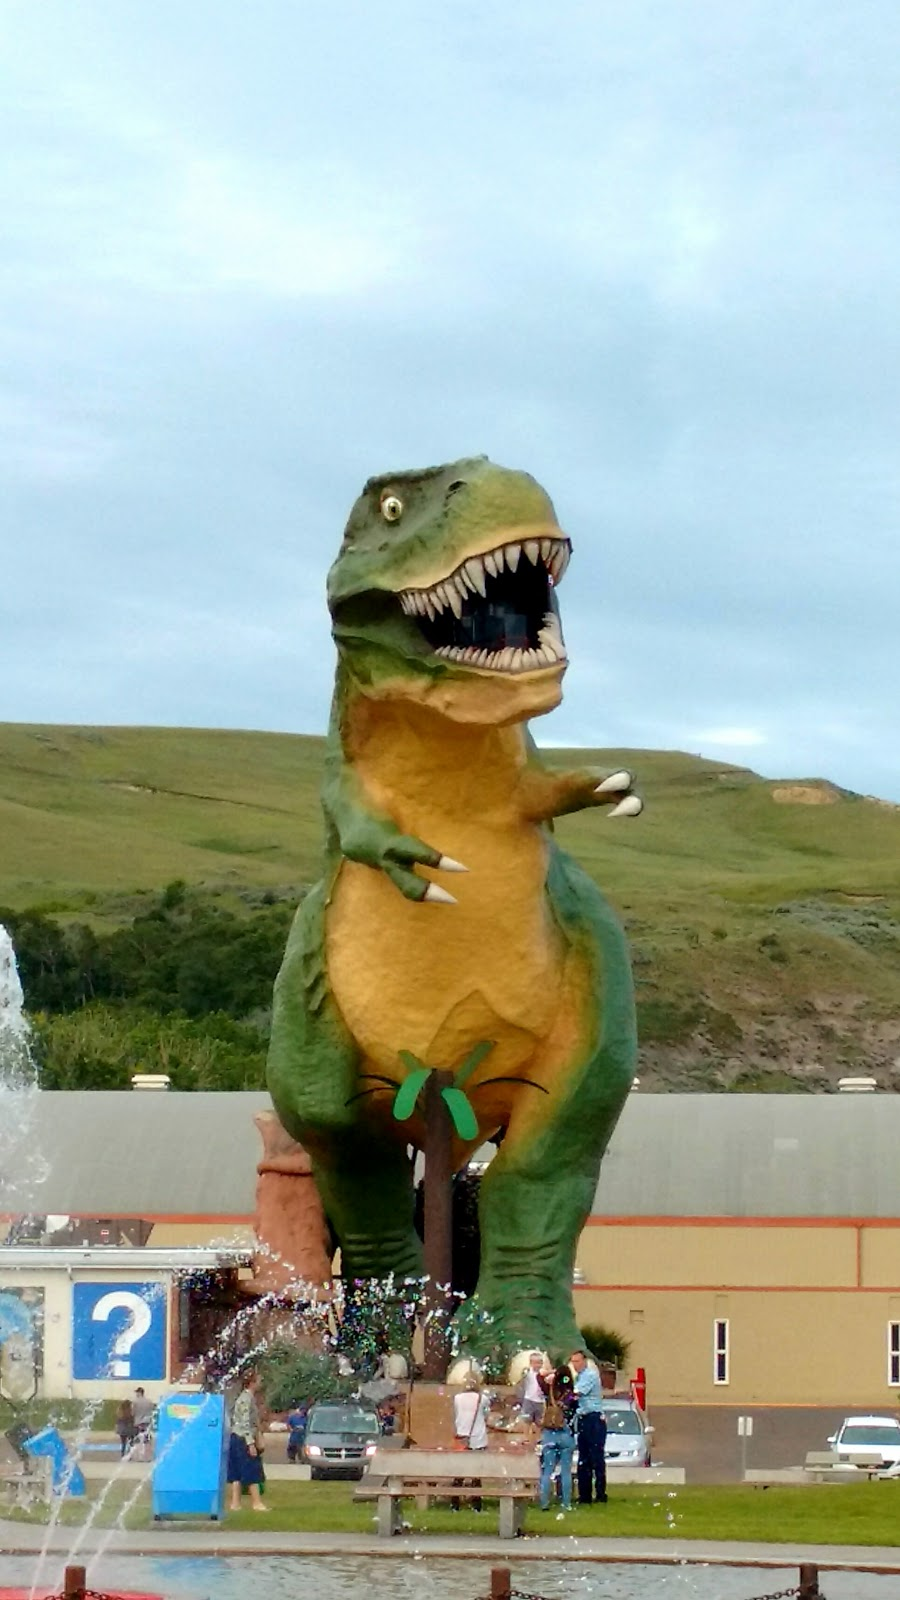 World's Biggest Dinosaur, Drumheller, Alberta